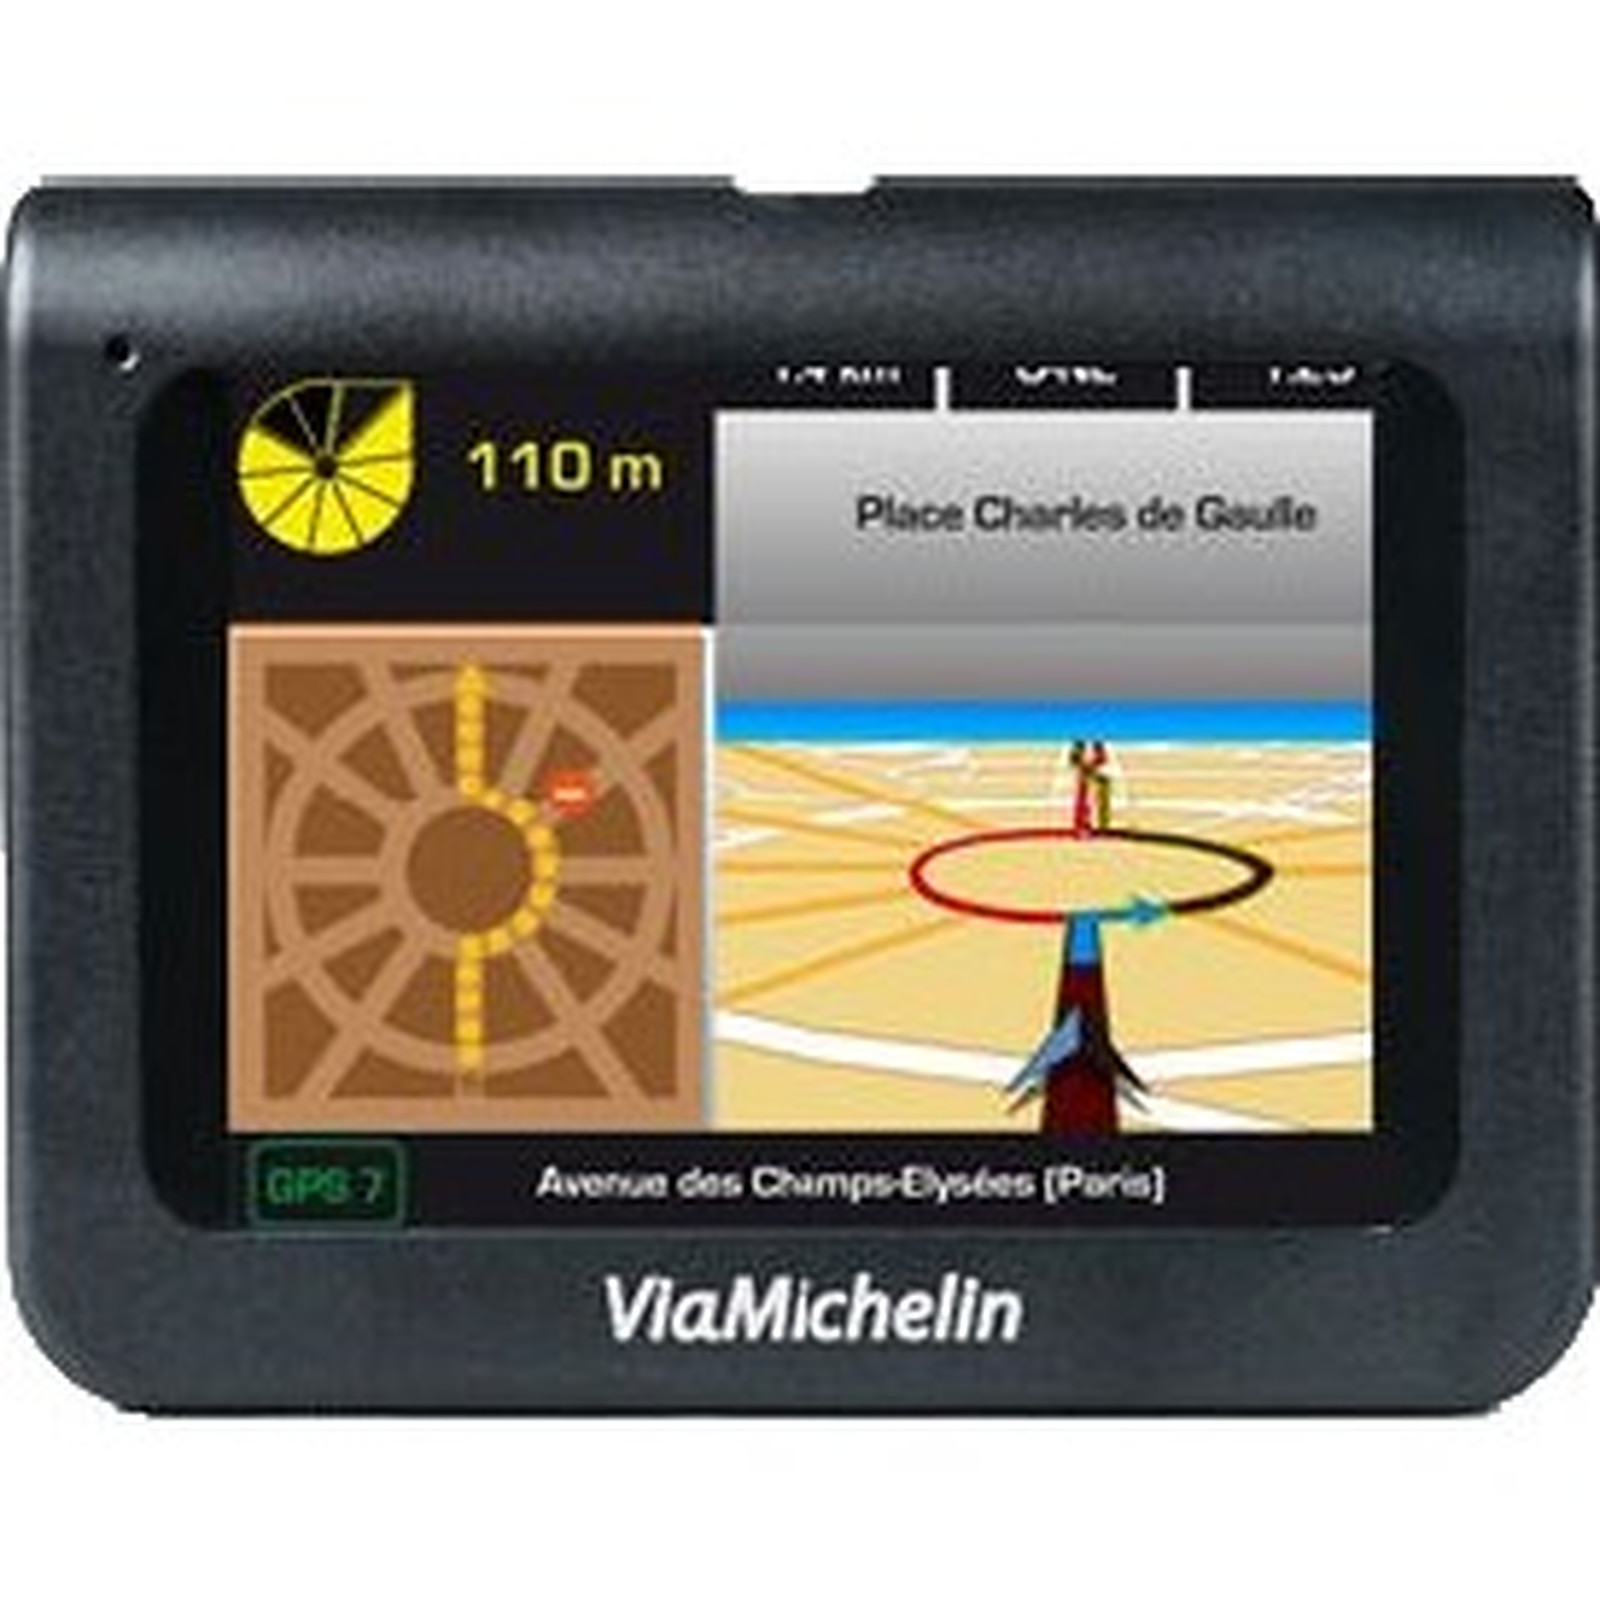 VIAMICHELIN NAVIGATION X 960 DRIVERS FOR WINDOWS